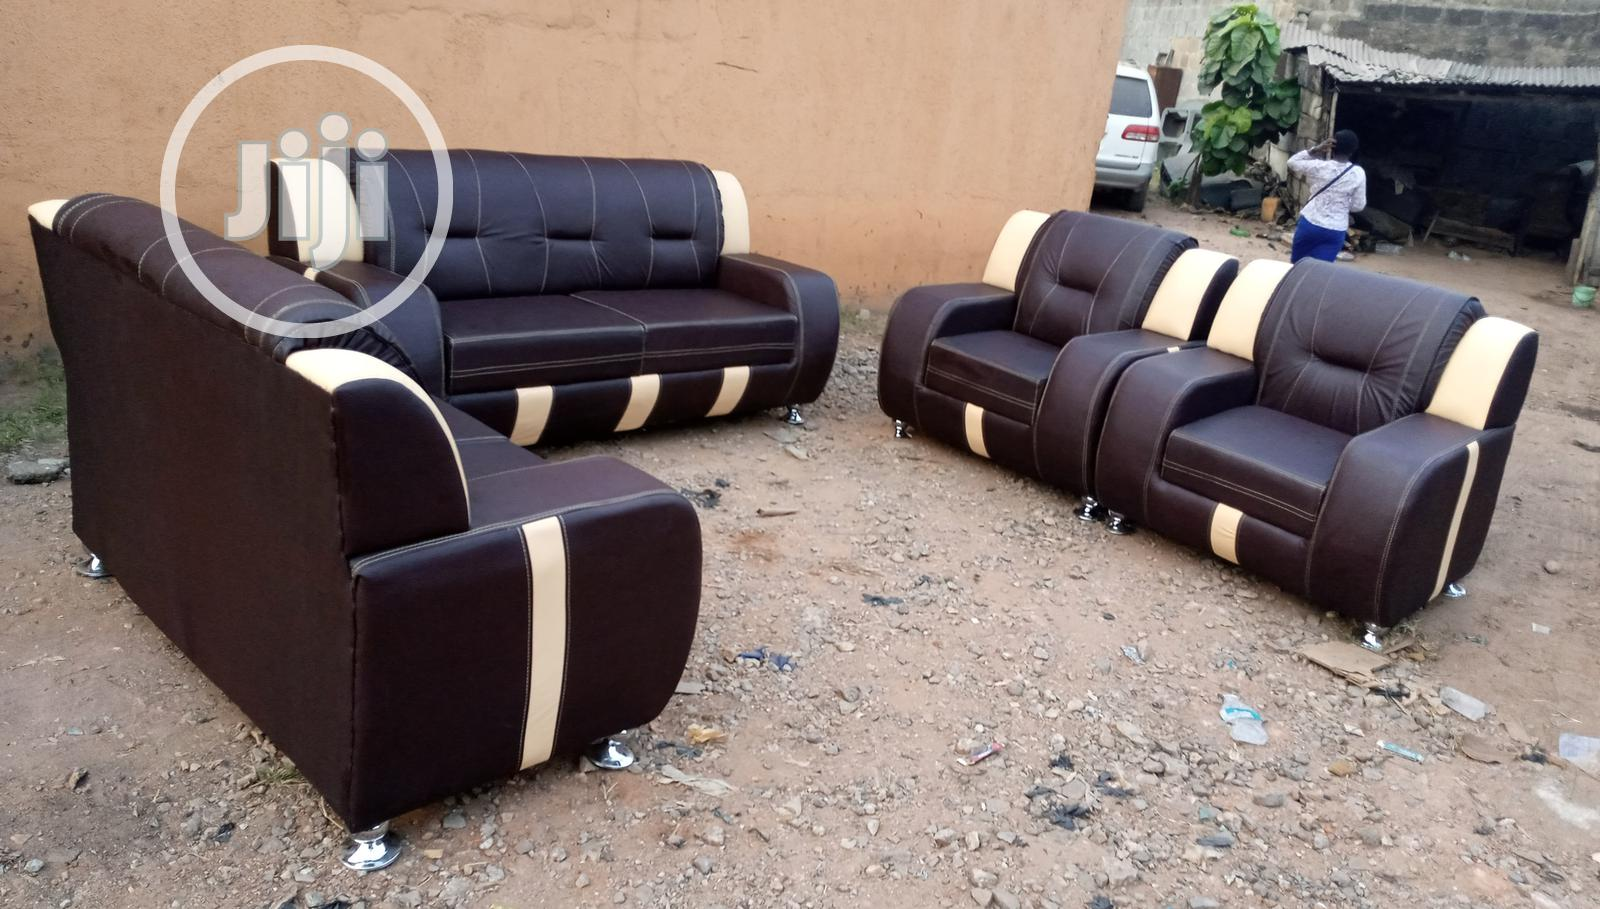 Archive: Complete Set of 7 Seaters Sofa Chair - Leather Couches